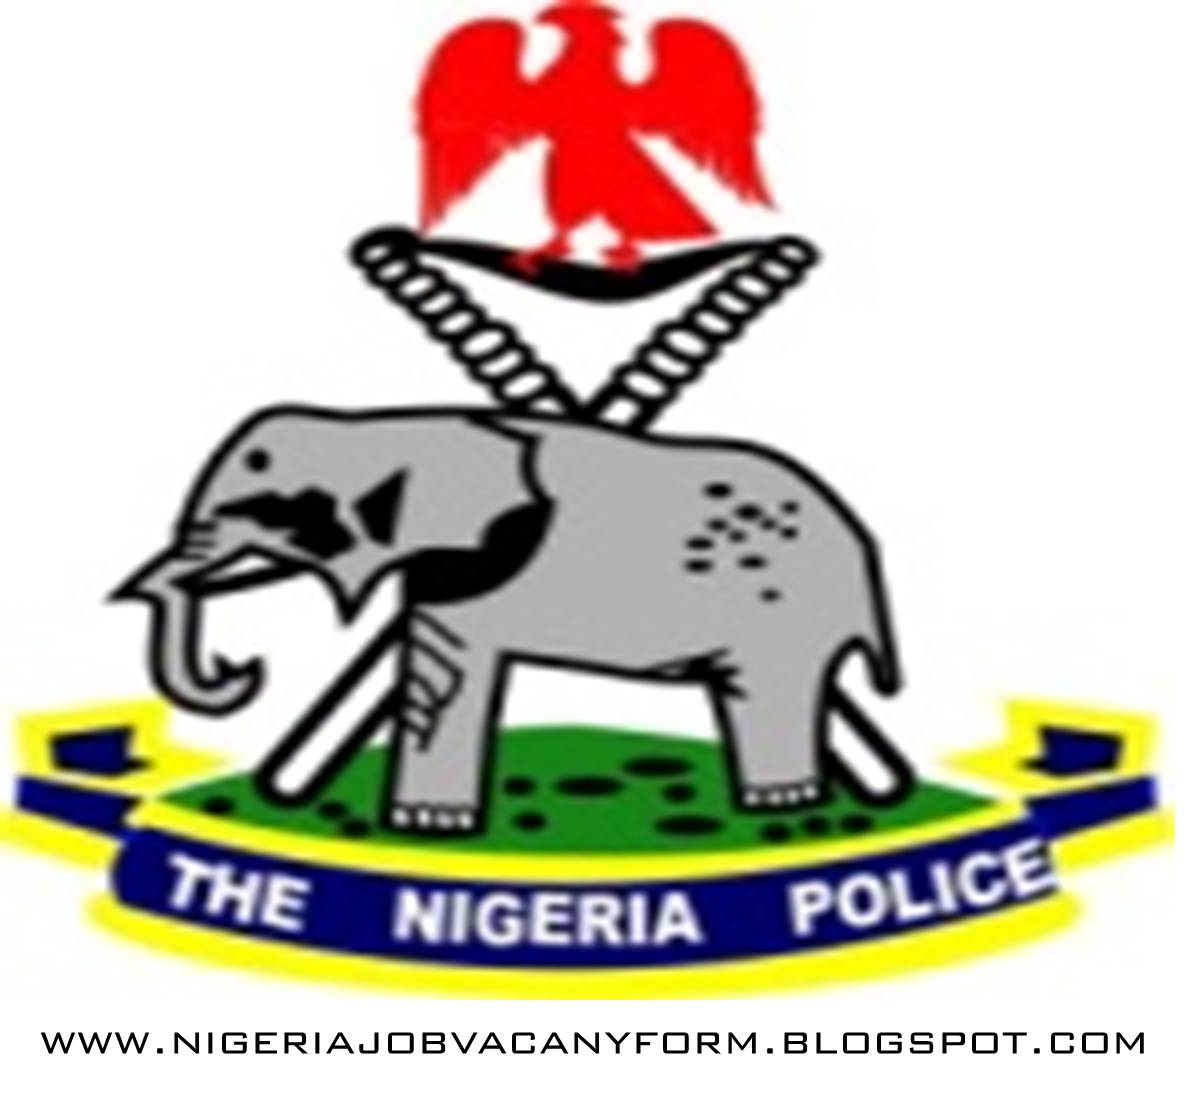 How To Apply For Nigeria Police Recruitment 2018/2019 - Recruitment